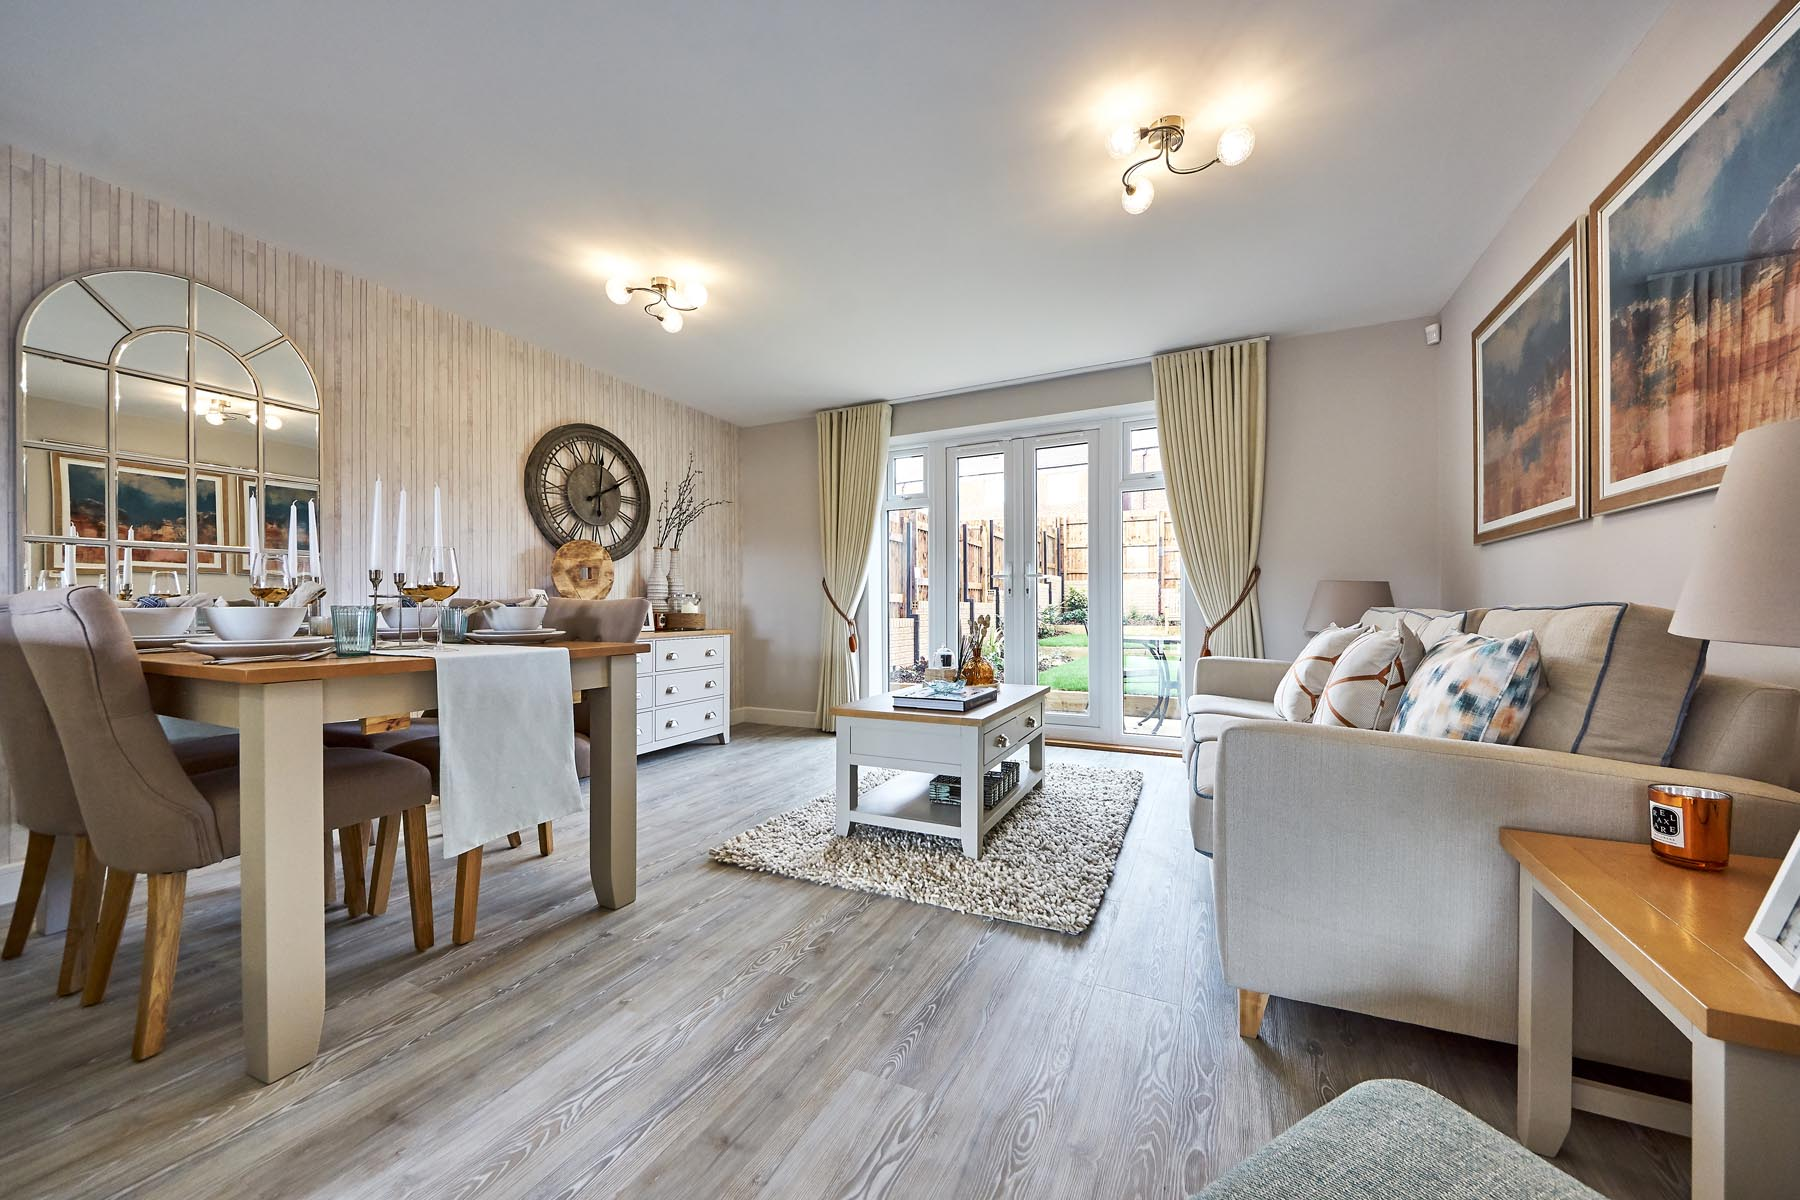 TW Exeter - Mayfield Gardens - Ashenford example living room